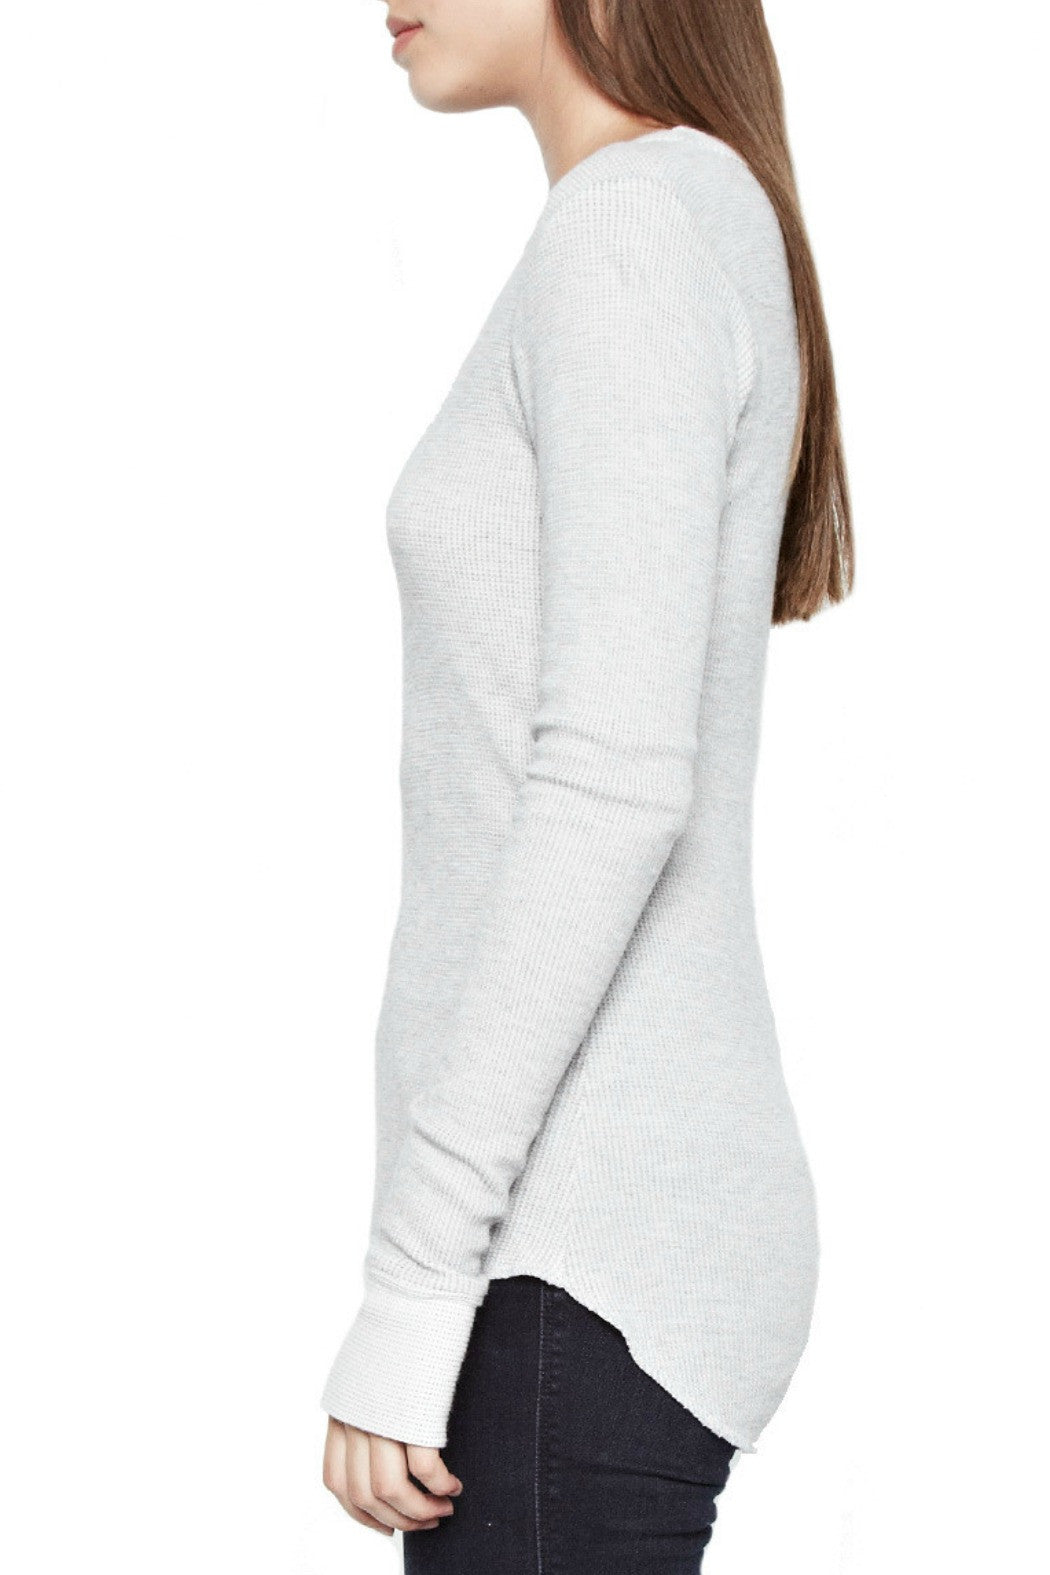 Alick LS fitted thumbhole tee - R+D Hipster Emporium | Womens & Mens Clothing - 3